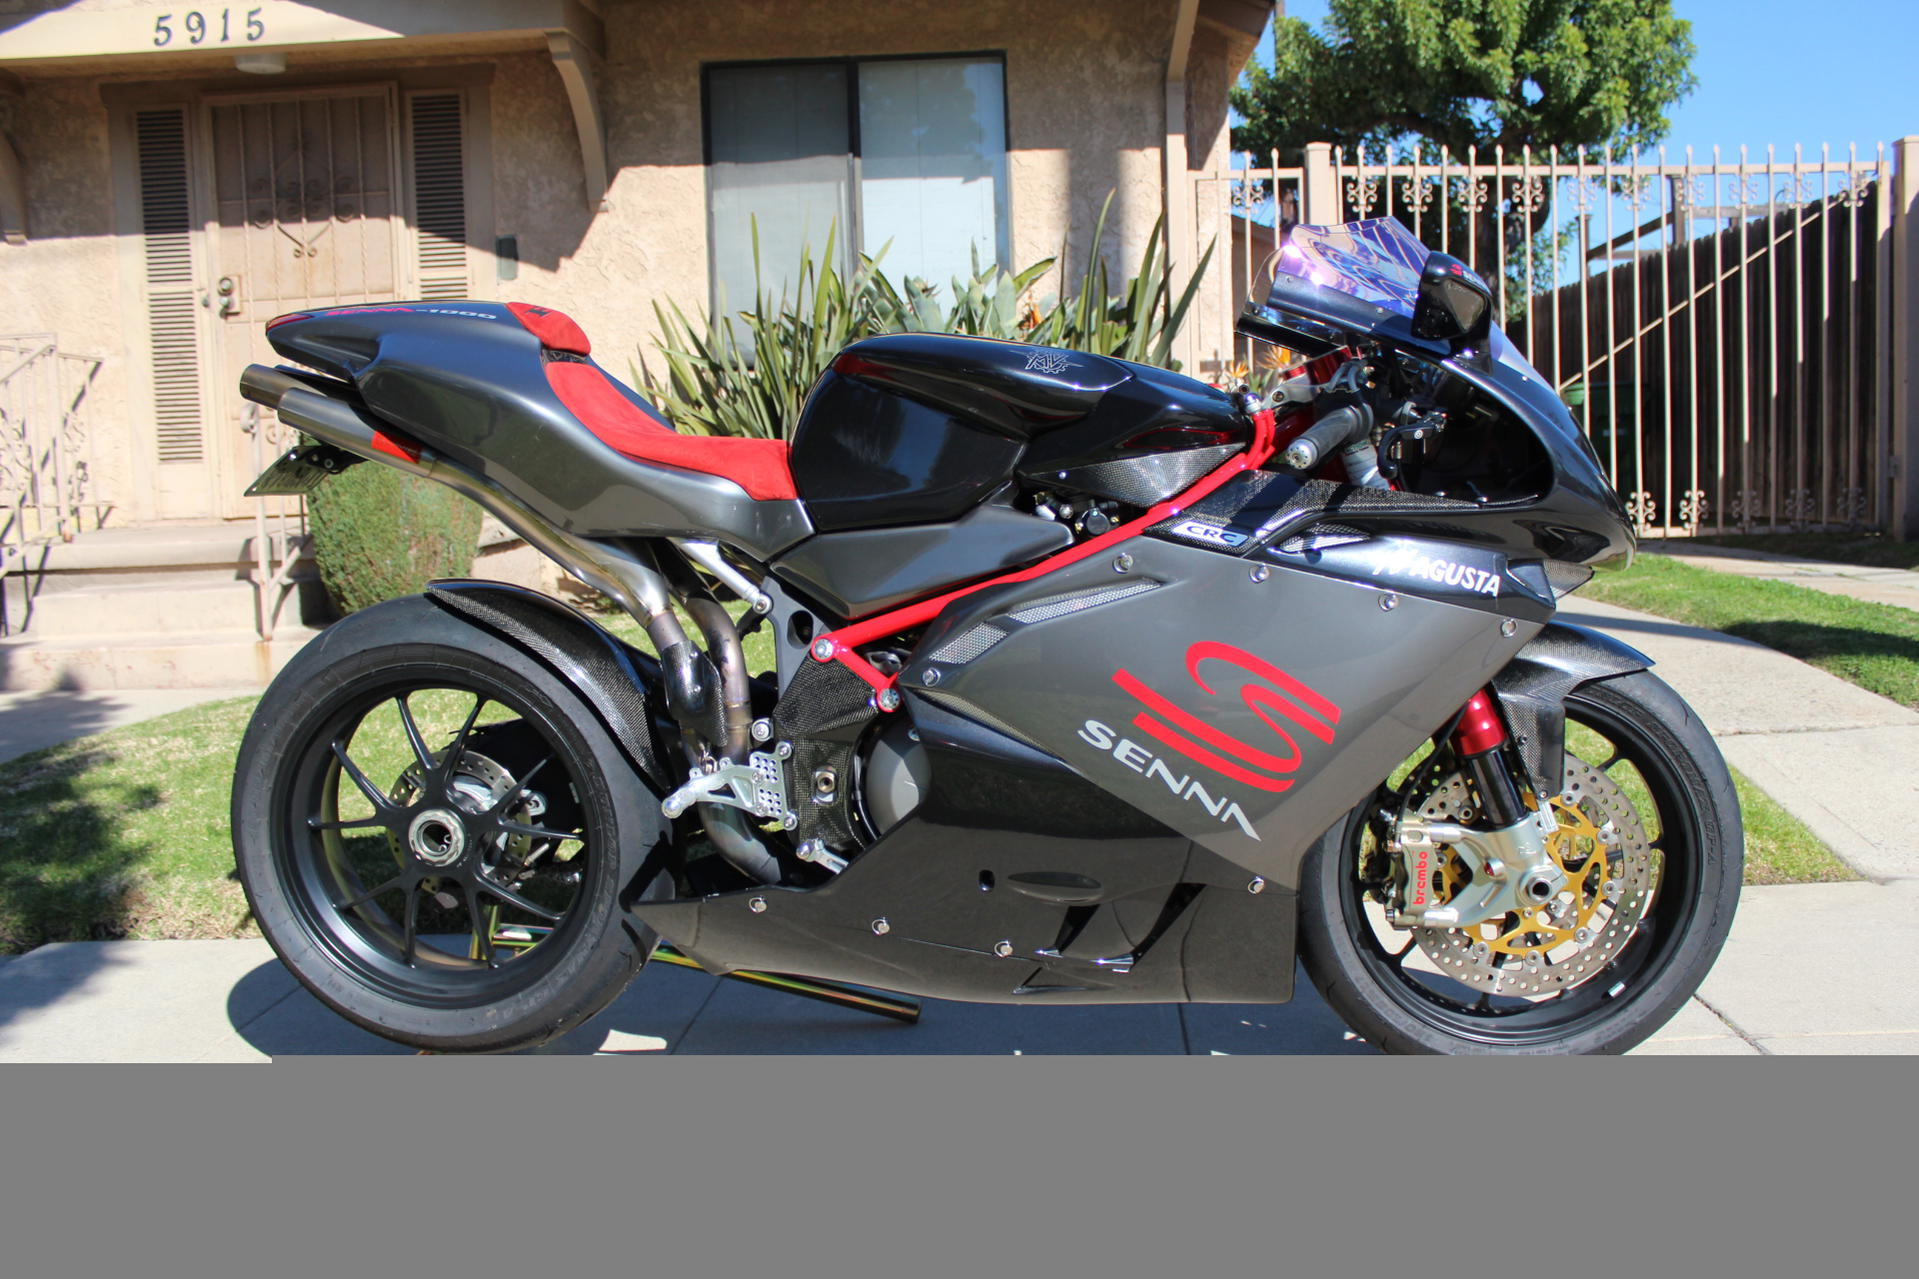 Ducati Org Forum The Home For Ducati Owners And Enthusiasts